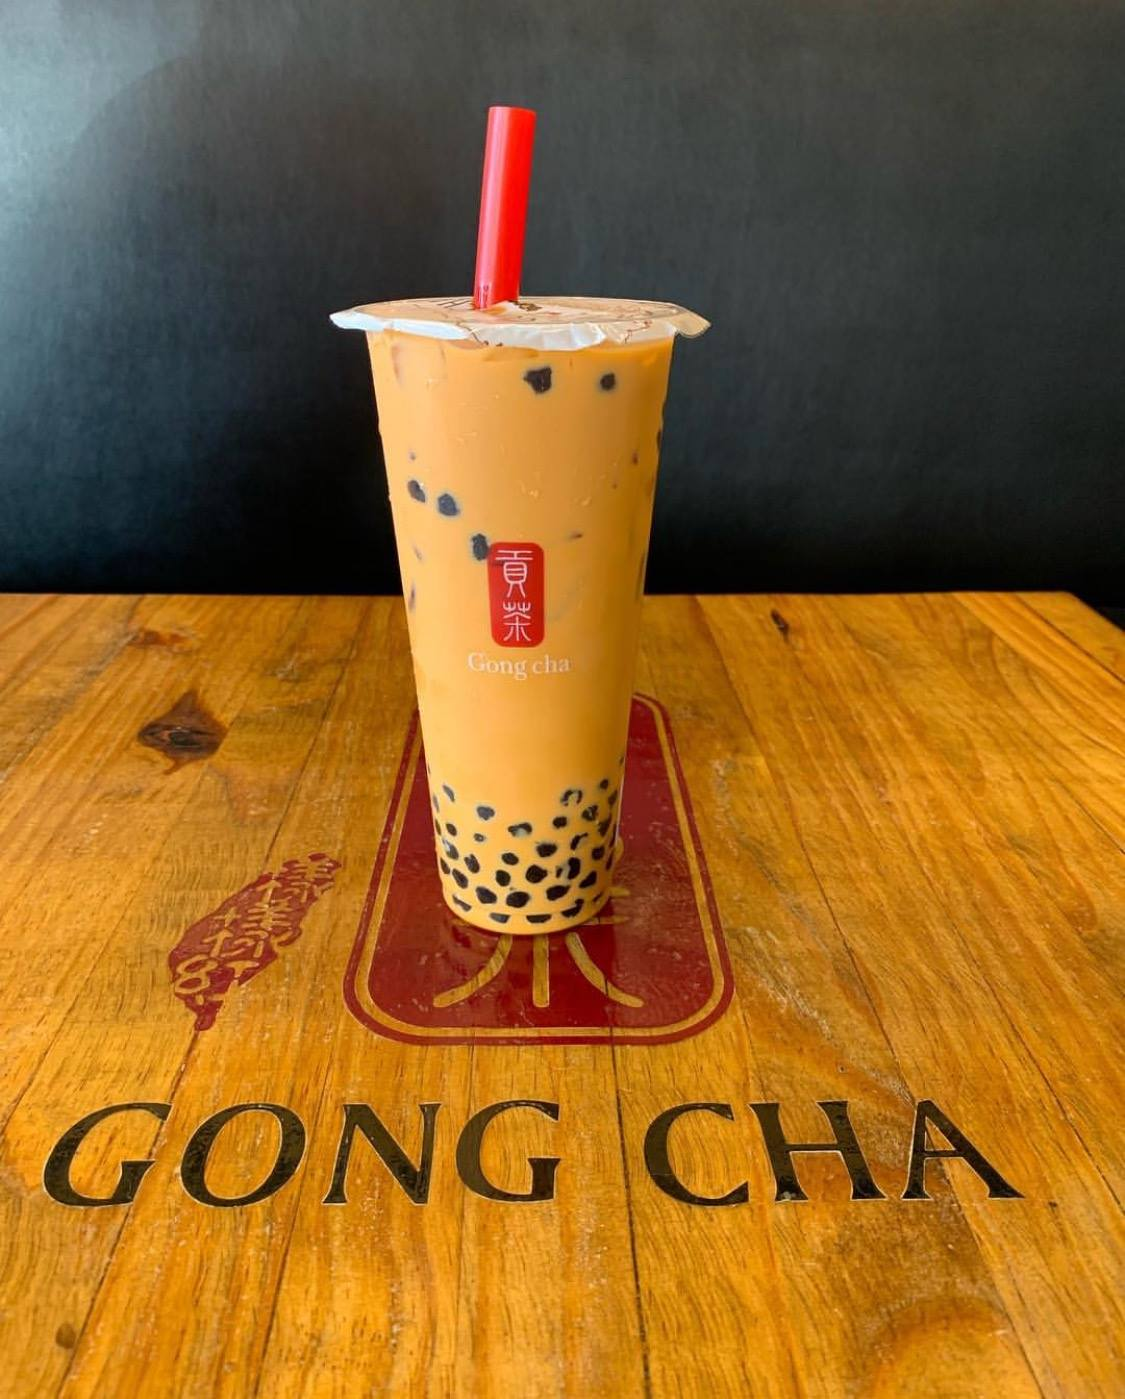 Bubble tea from Gong Cha